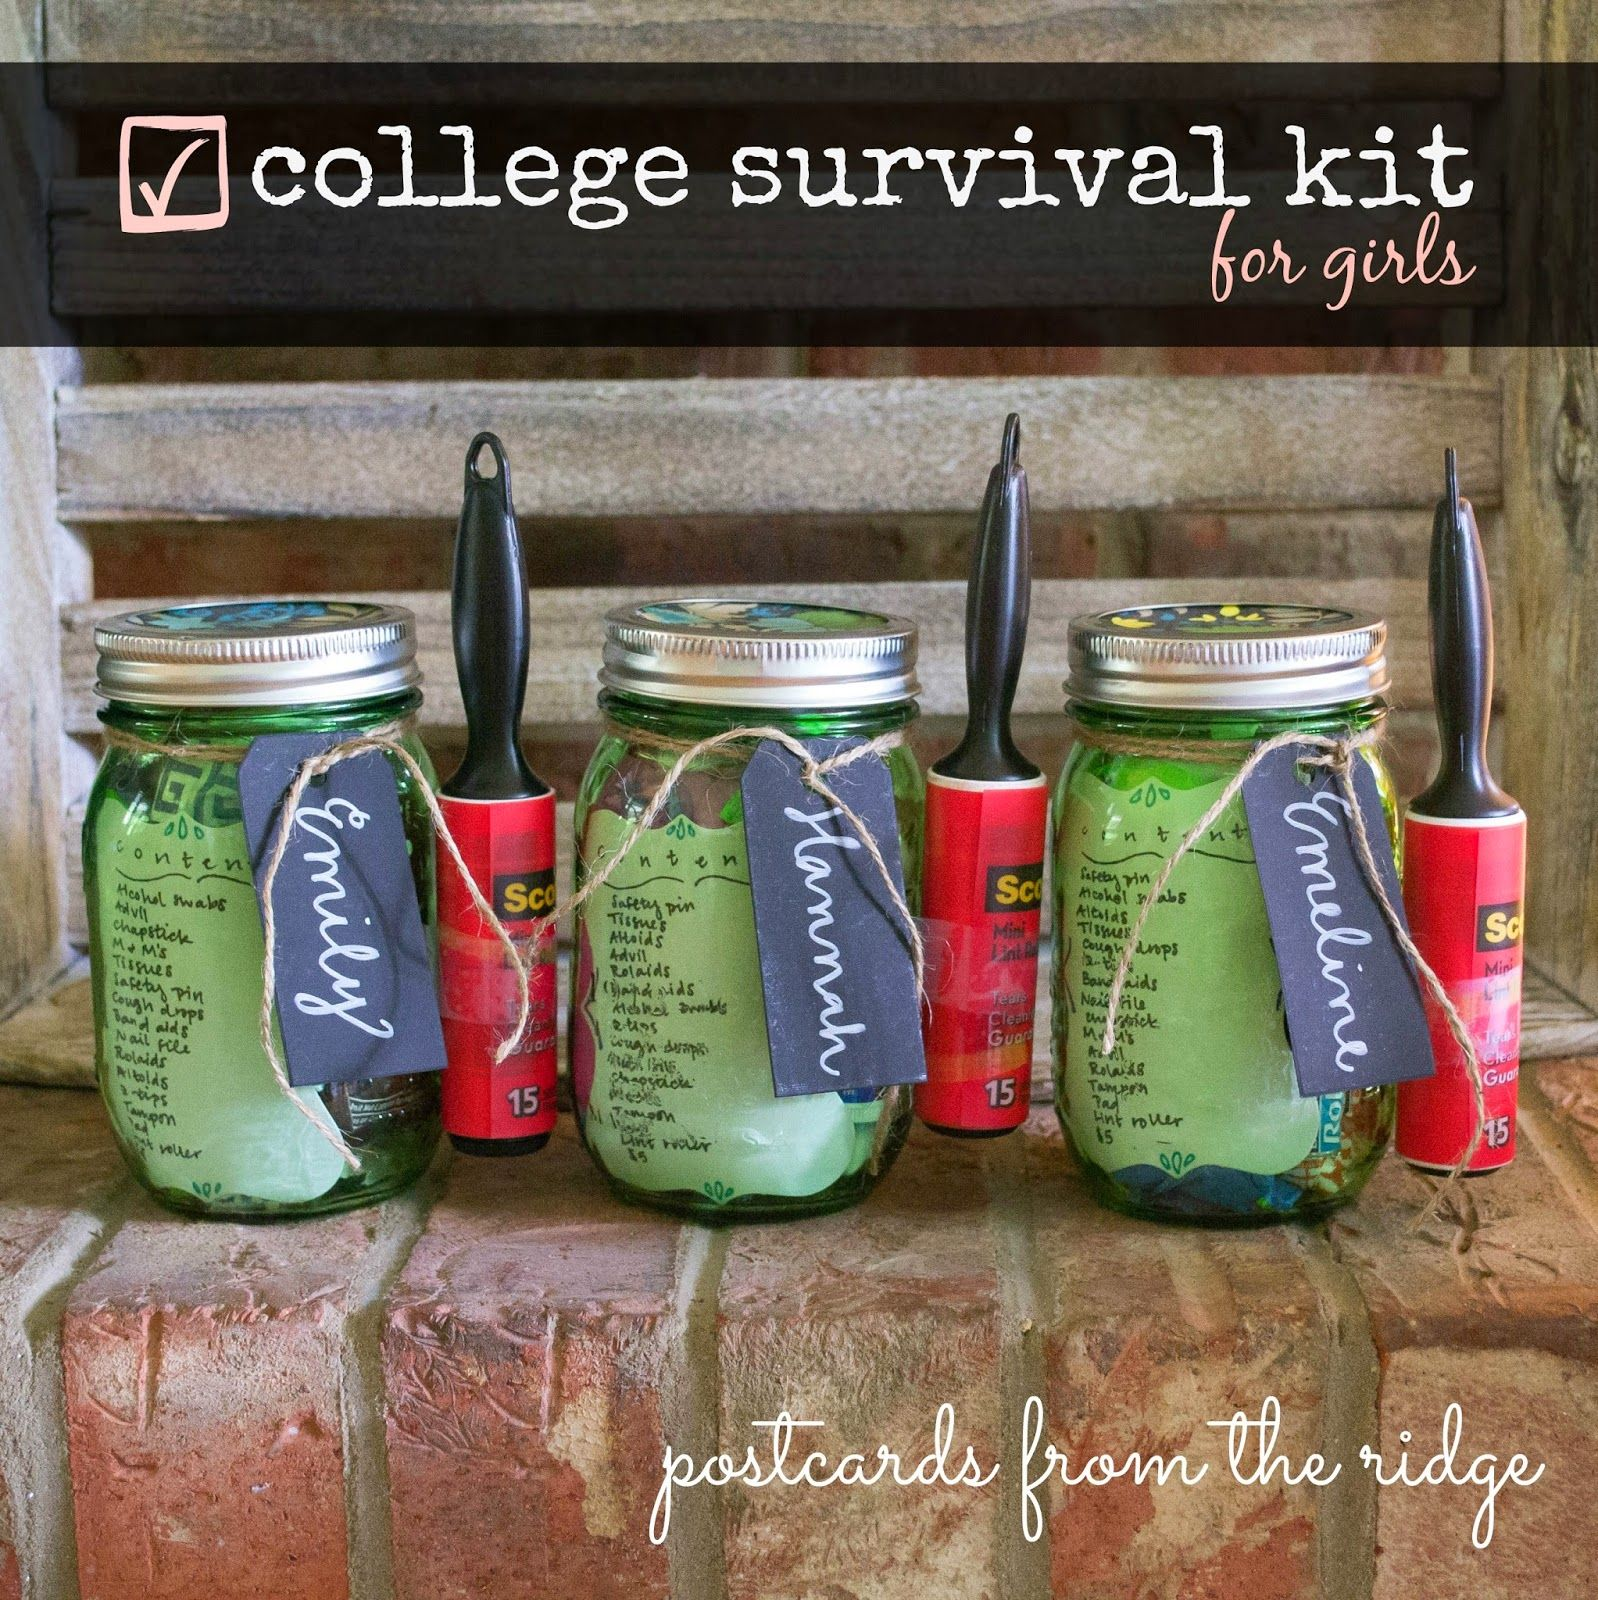 Pics photos funny college survival kit ideas - Mason Jar College Survival Kit Giveaway